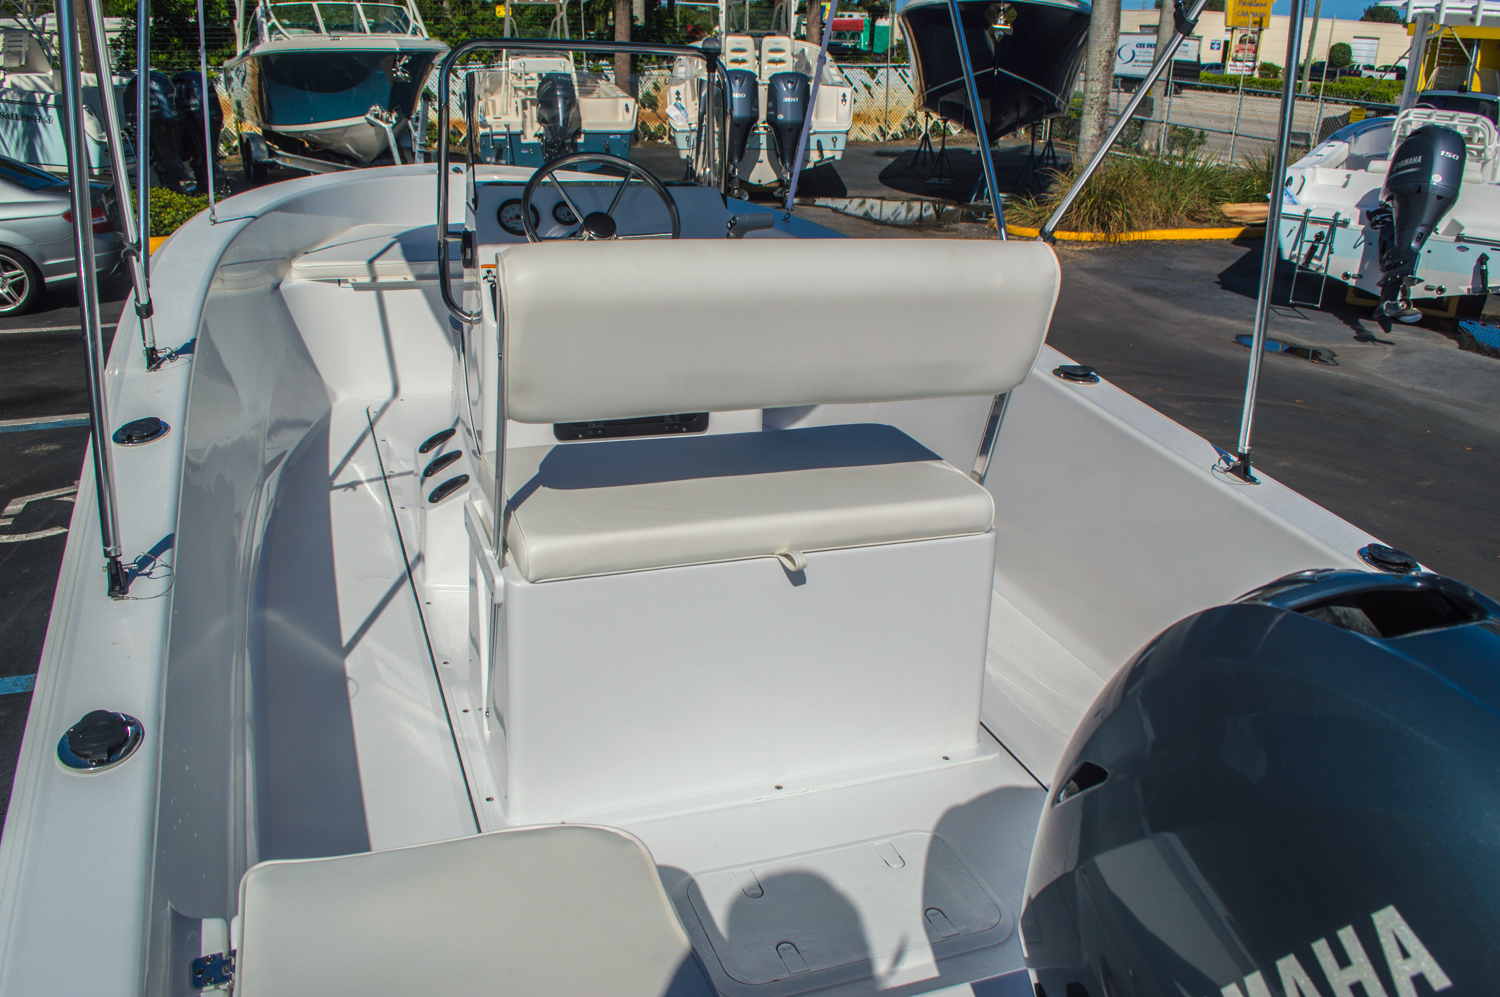 Thumbnail 11 for New 2016 Sportsman 17 Island Reef boat for sale in West Palm Beach, FL